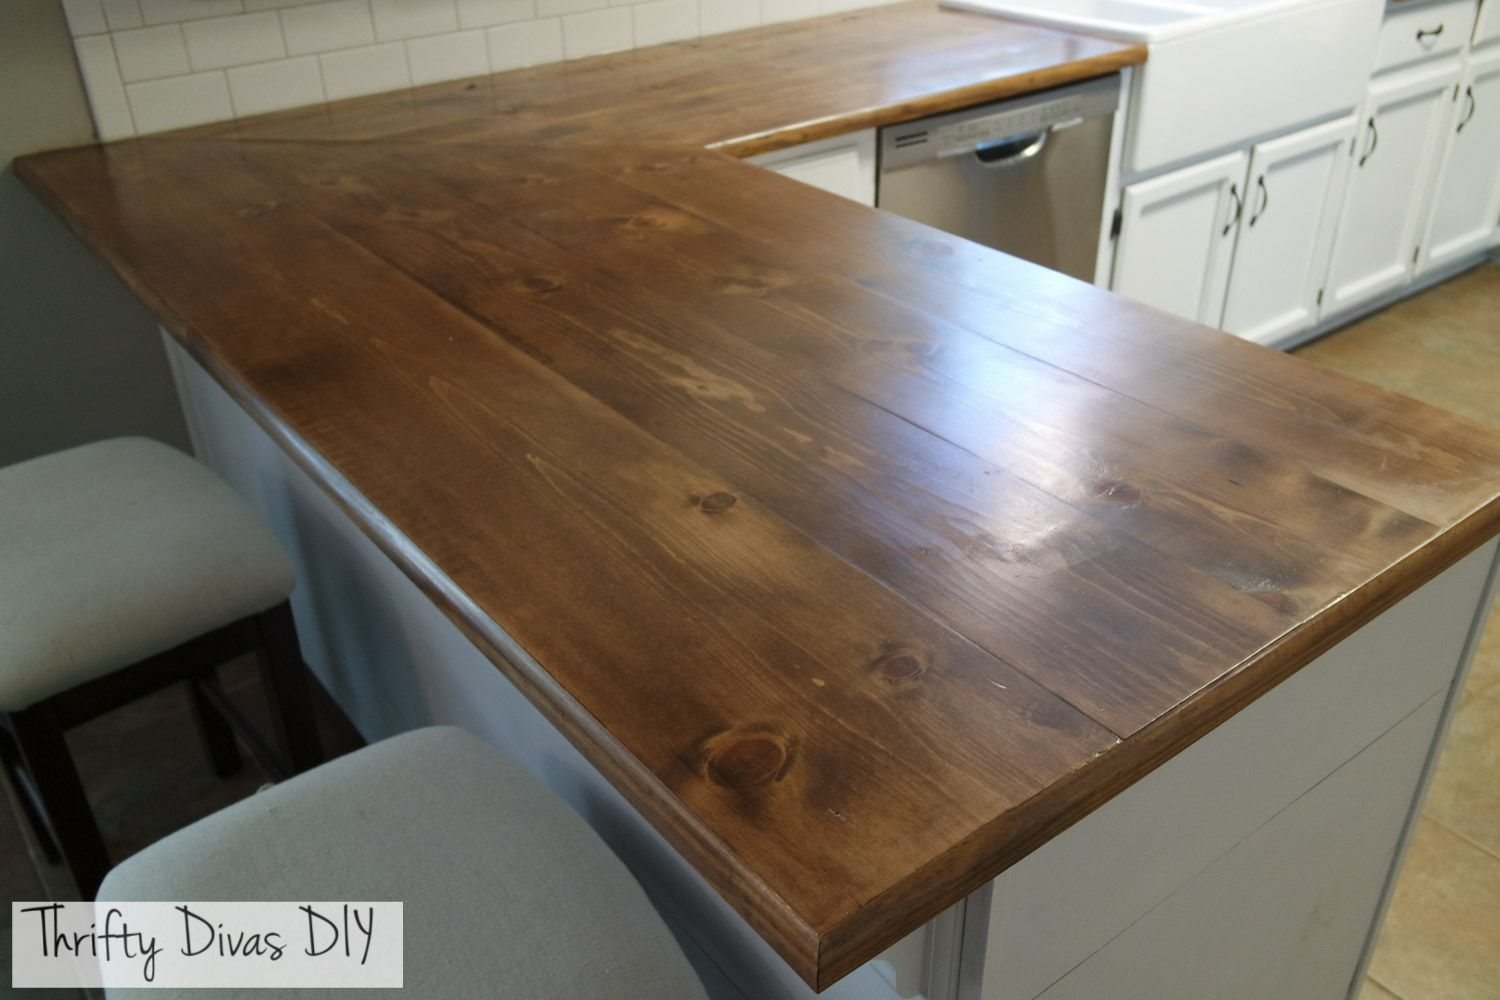 Thrifty Divas Diy Wide Plank Butcher Block Countertops Diy